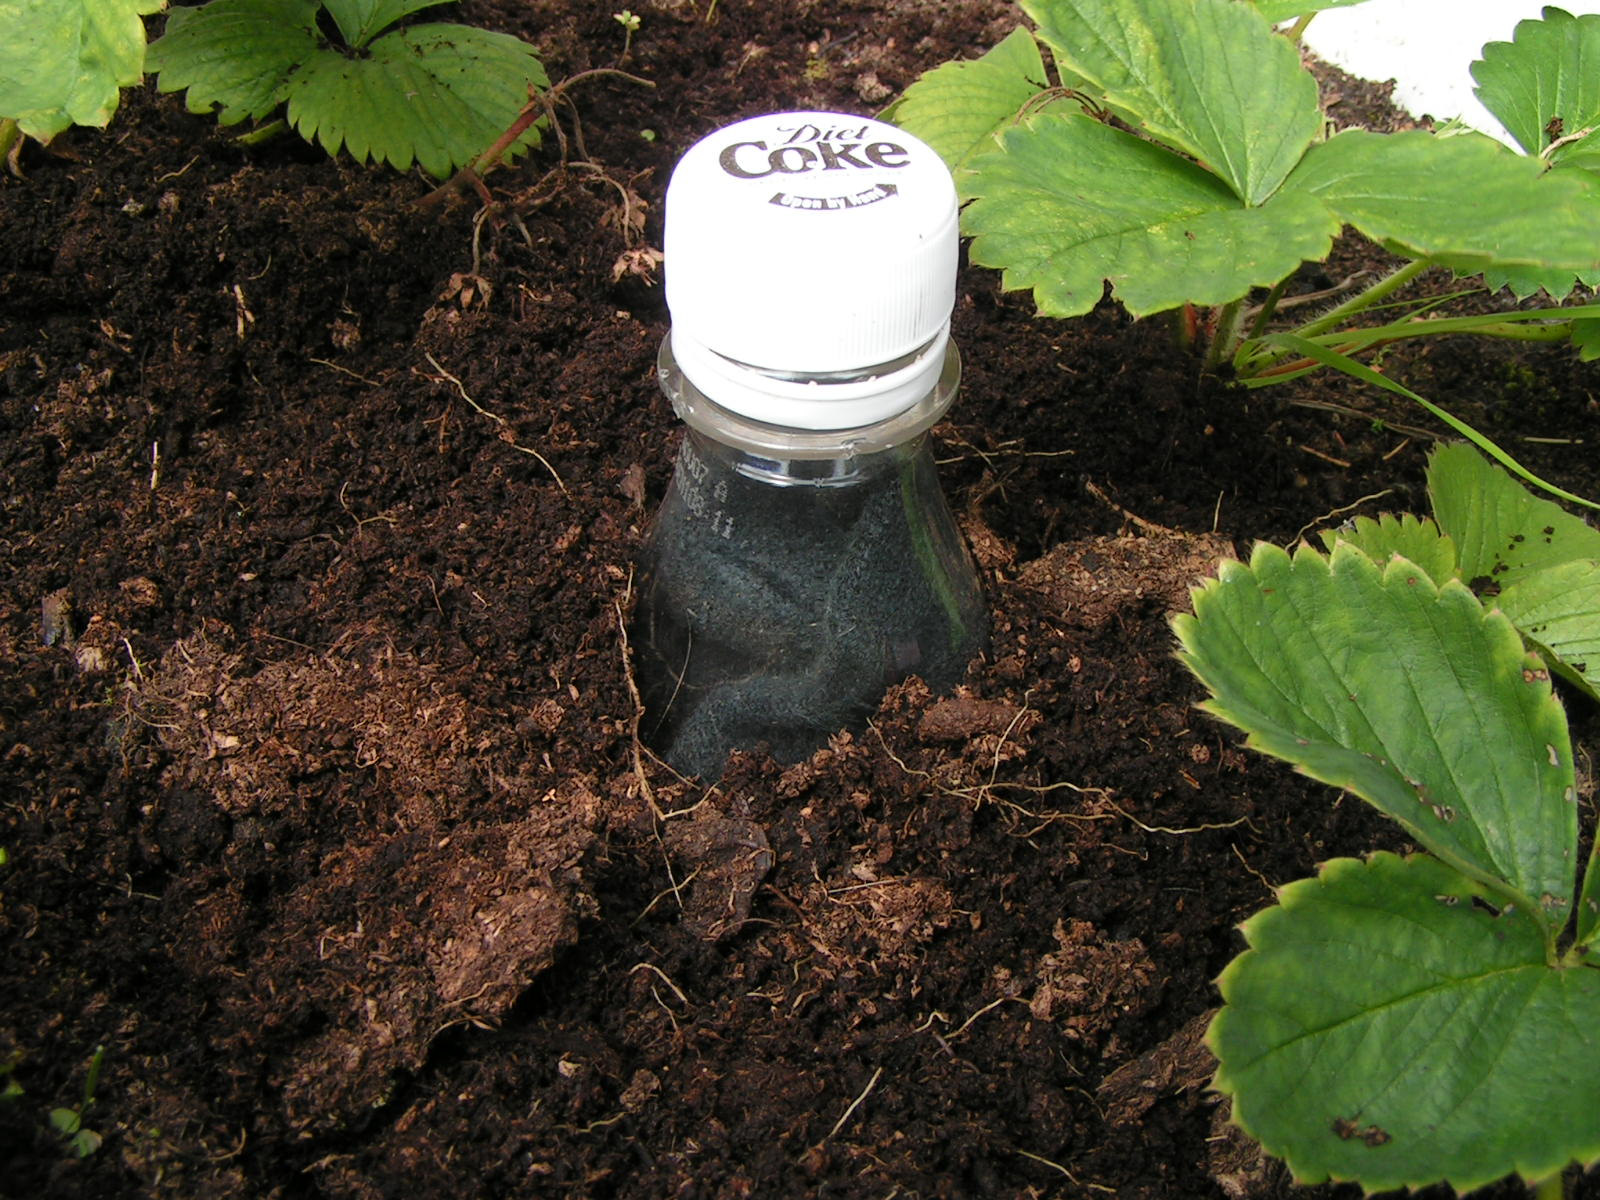 Picture of How to Save Water in Gardens and Small-holdings: the Scrooge Bottle.